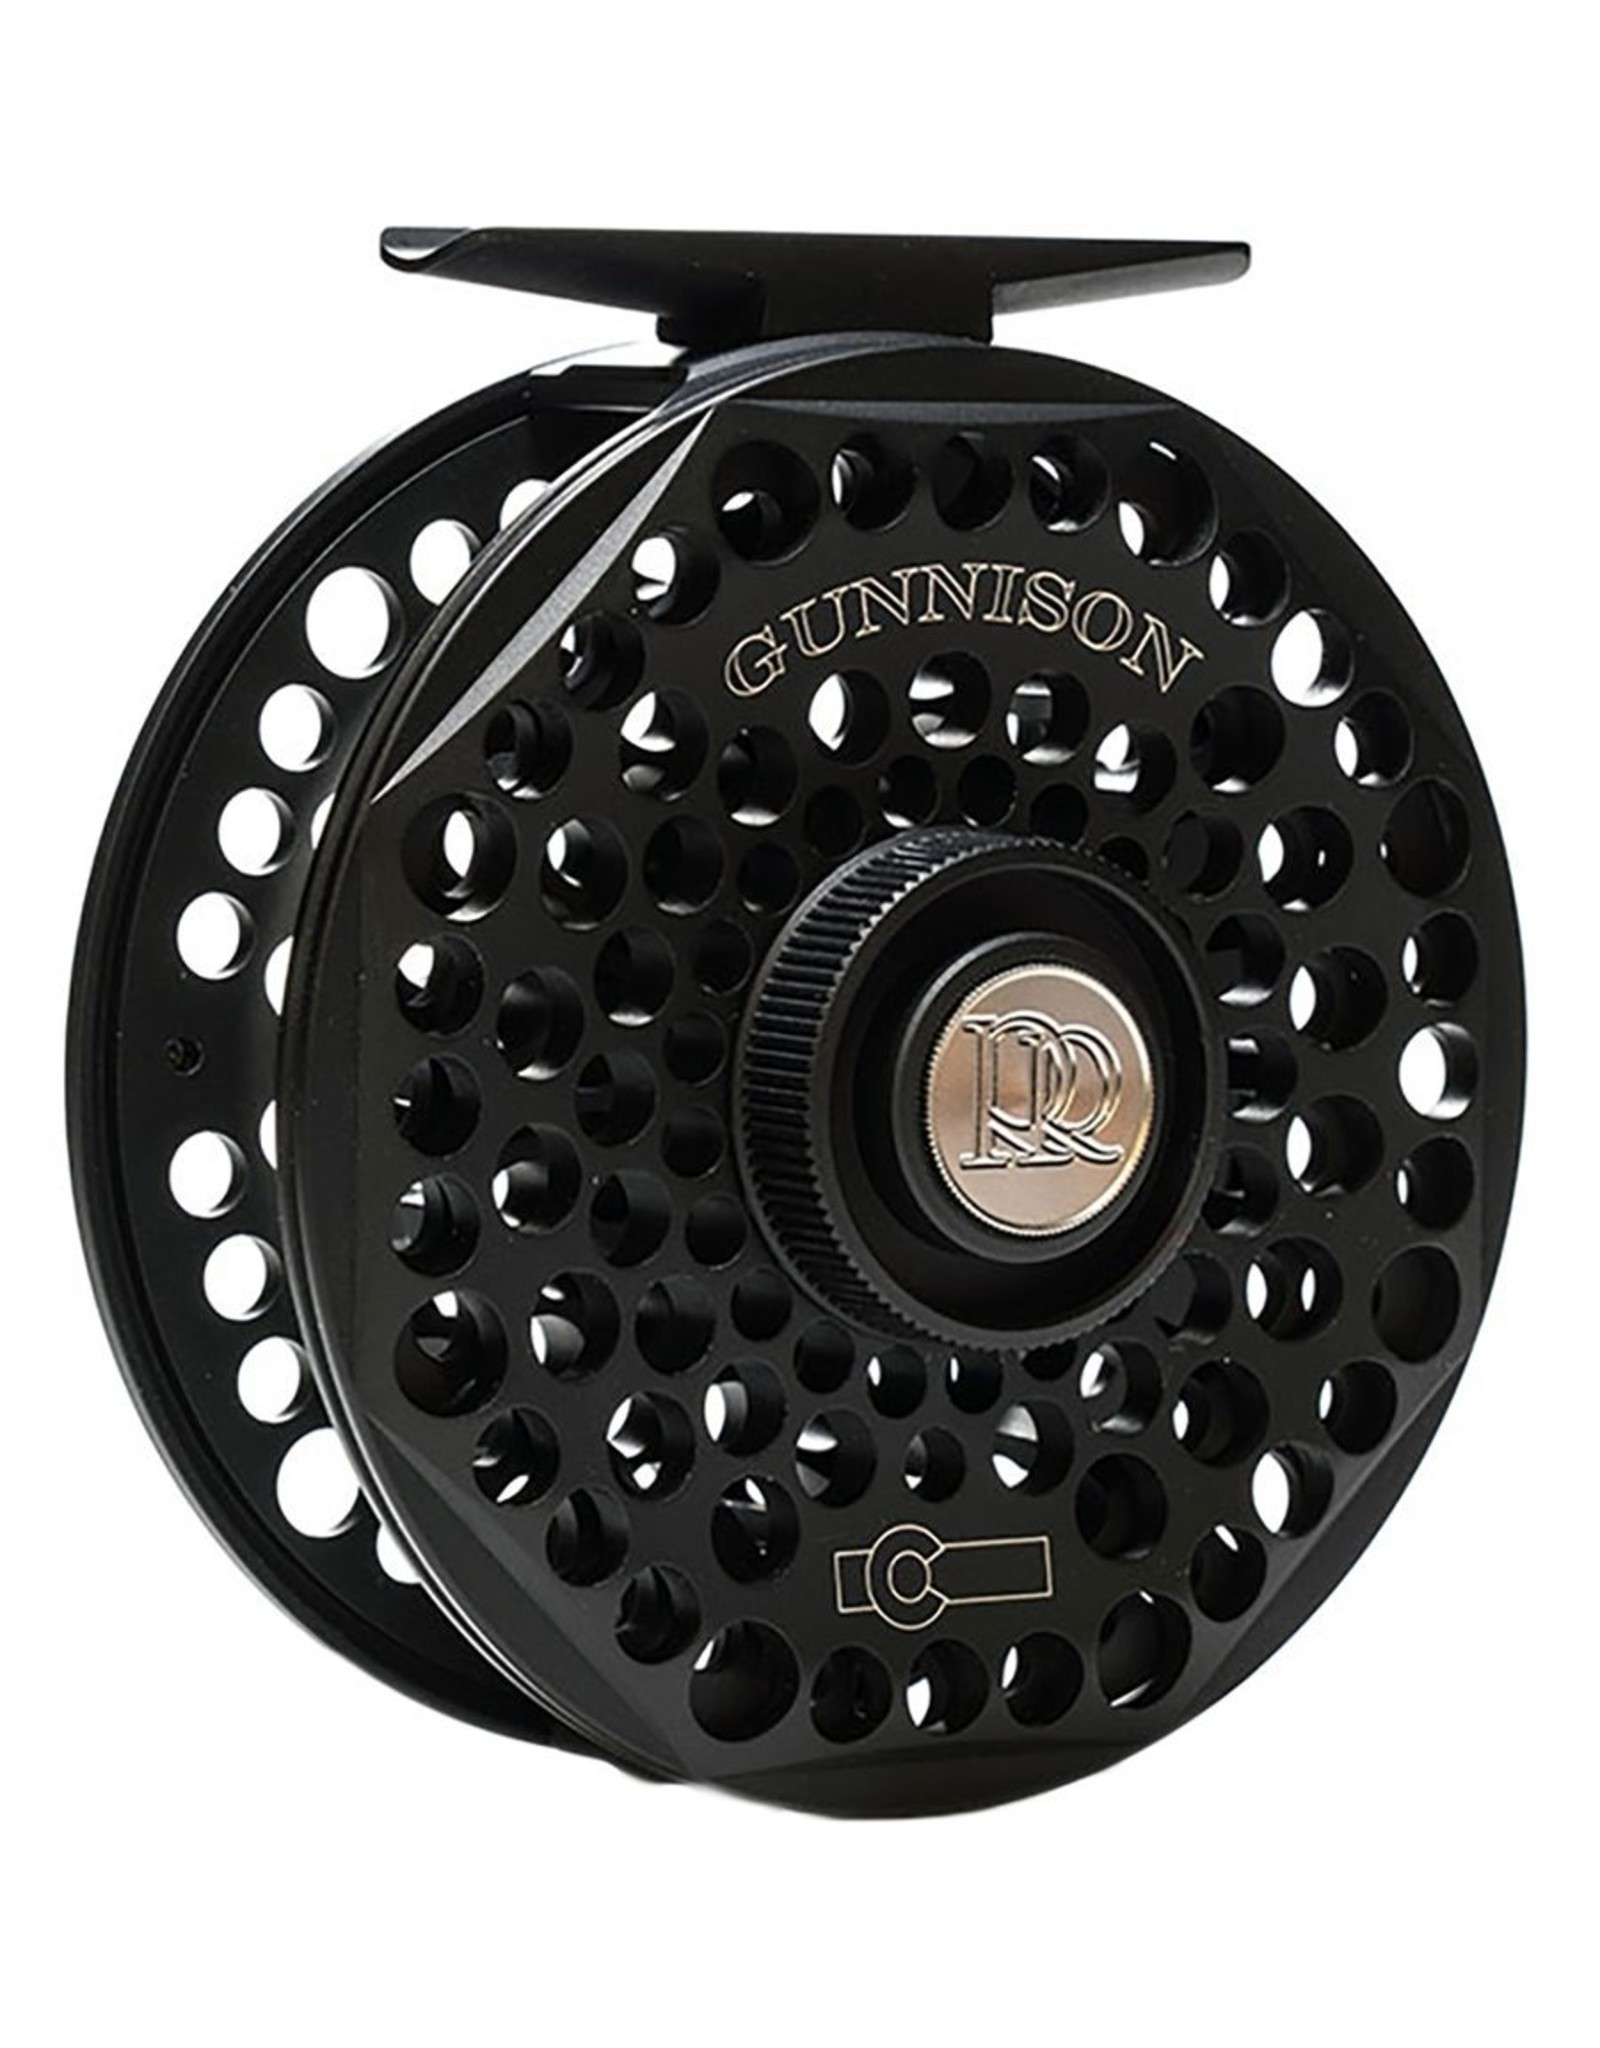 Ross Worldwide Ross - Gunnison Reel